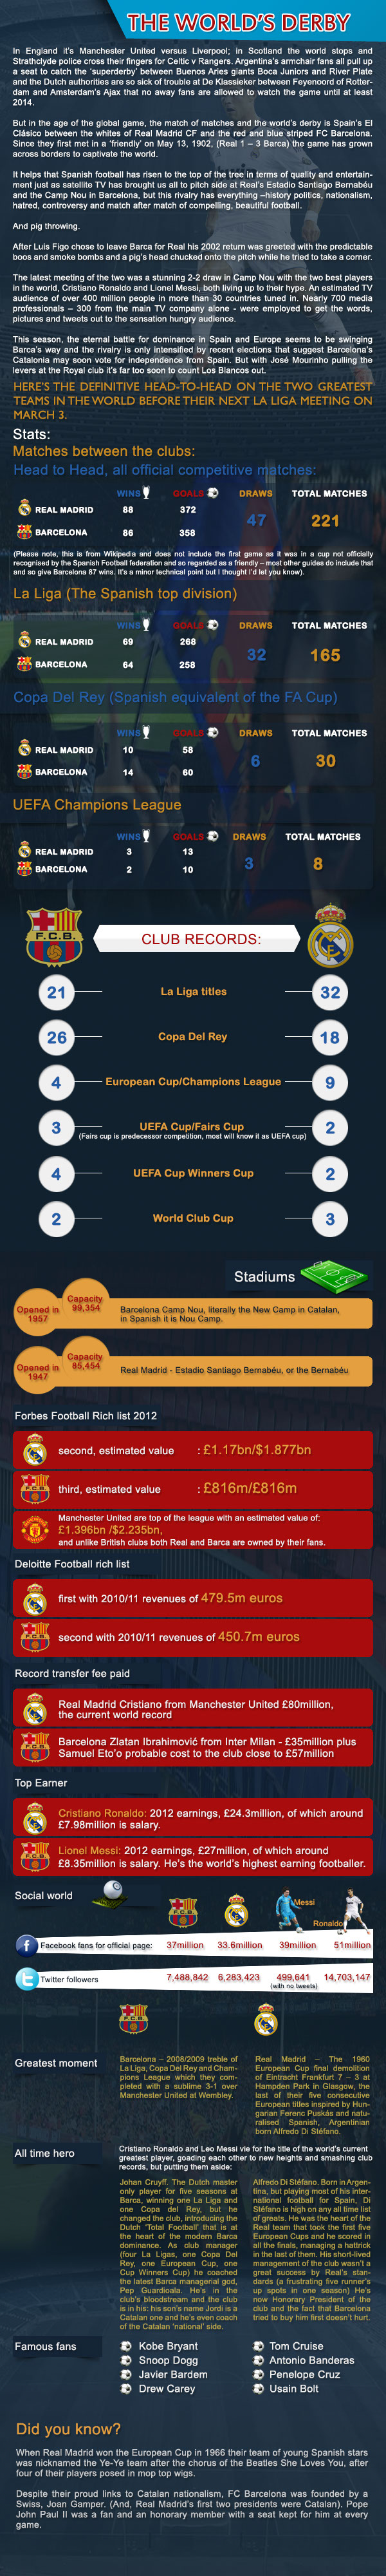 Barcelona-vs-Real-Madrid-records-Infographic